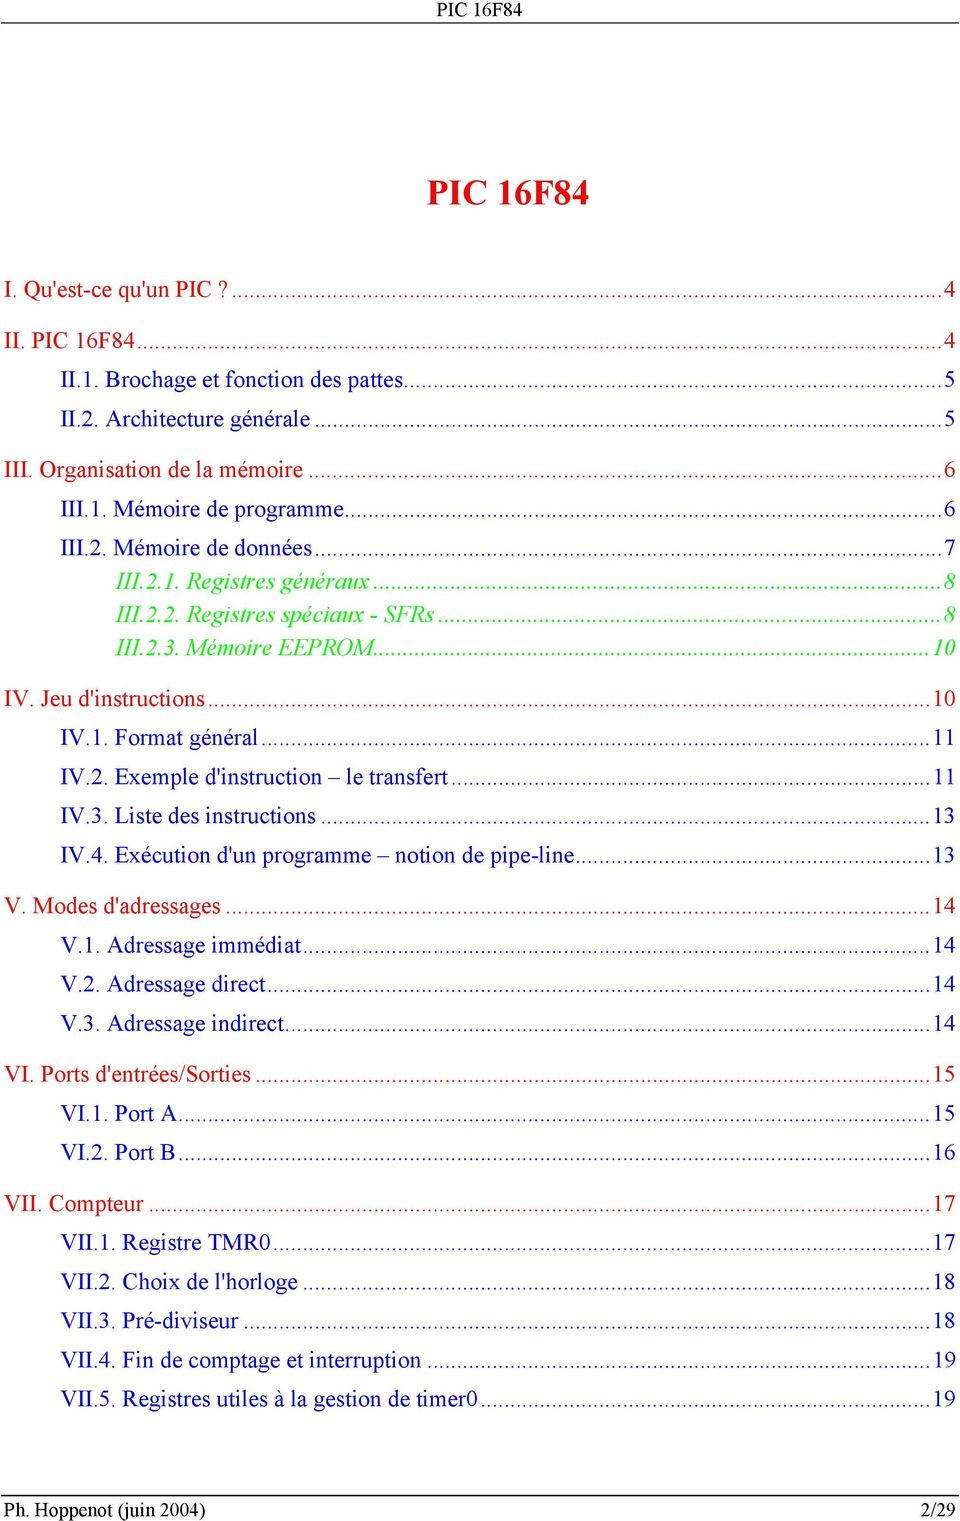 ..11 IV.3. Liste des instructions...13 IV.4. Exécution d'un programme notion de pipe-line...13 V. Modes d'adressages...14 V.1. Adressage immédiat...14 V.2. Adressage direct...14 V.3. Adressage indirect.